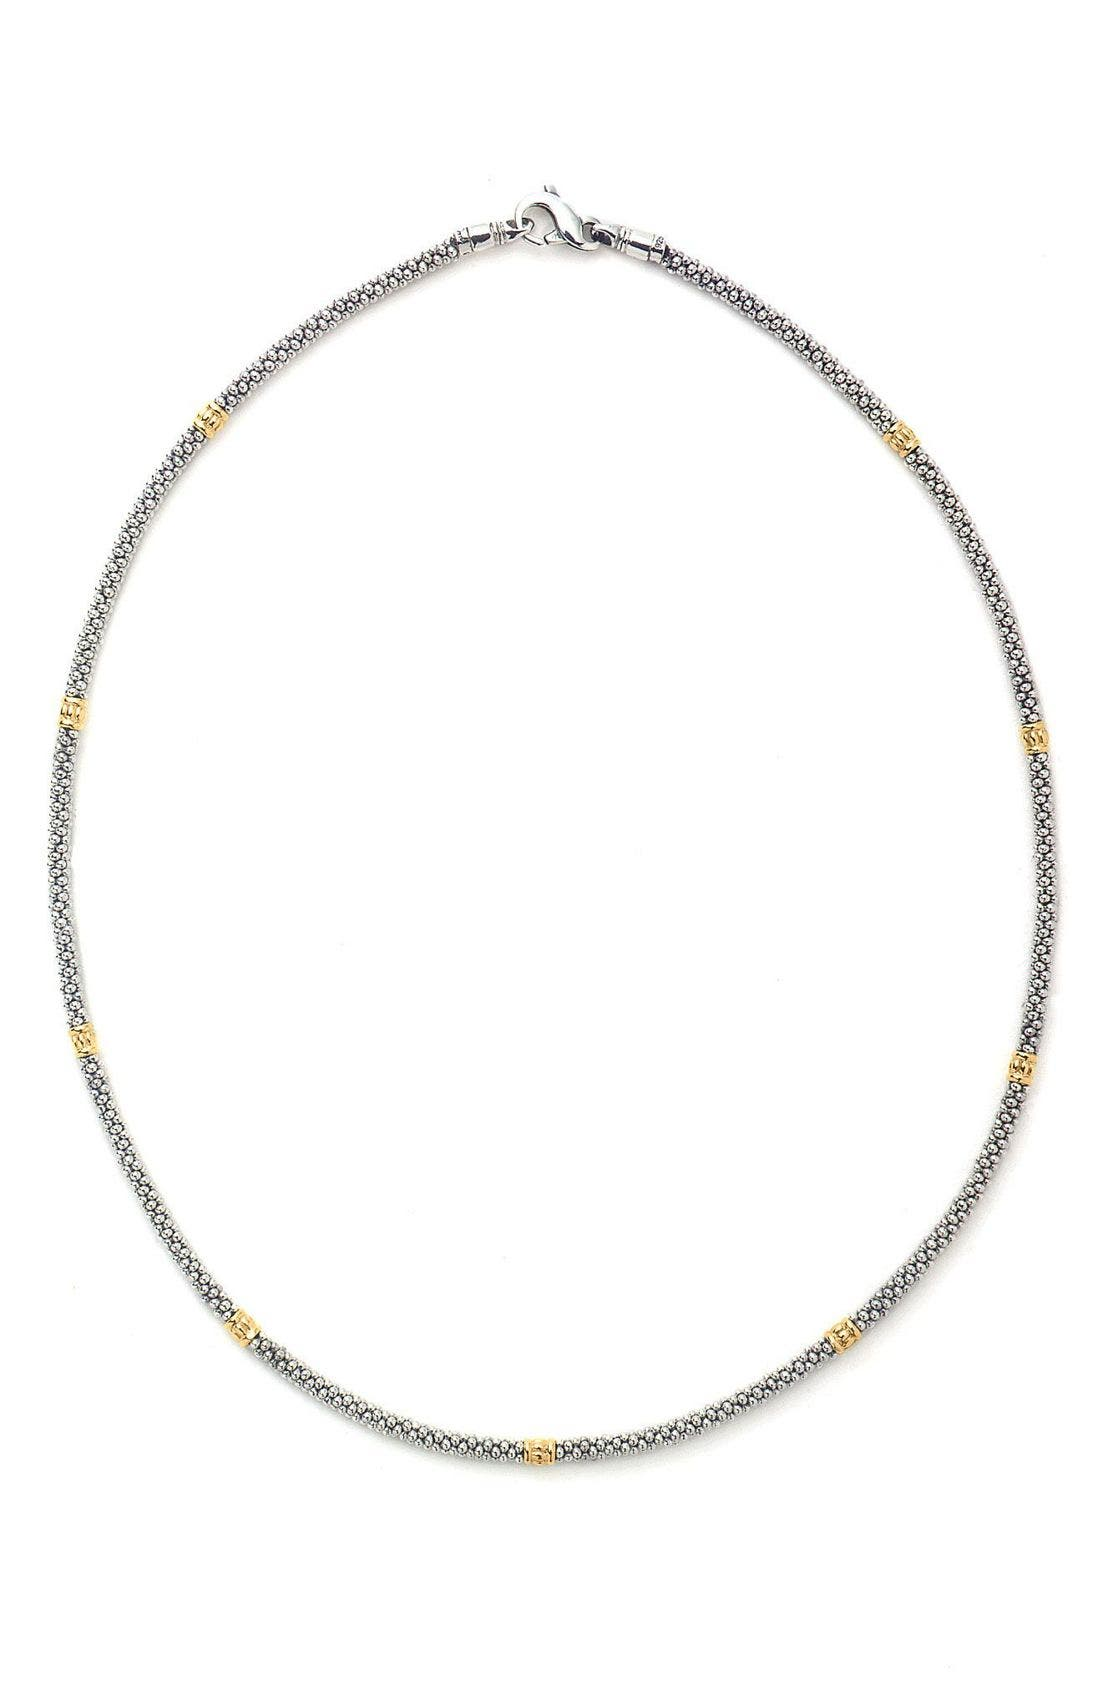 Caviar Rope Necklace,                         Main,                         color, Silver/Gold